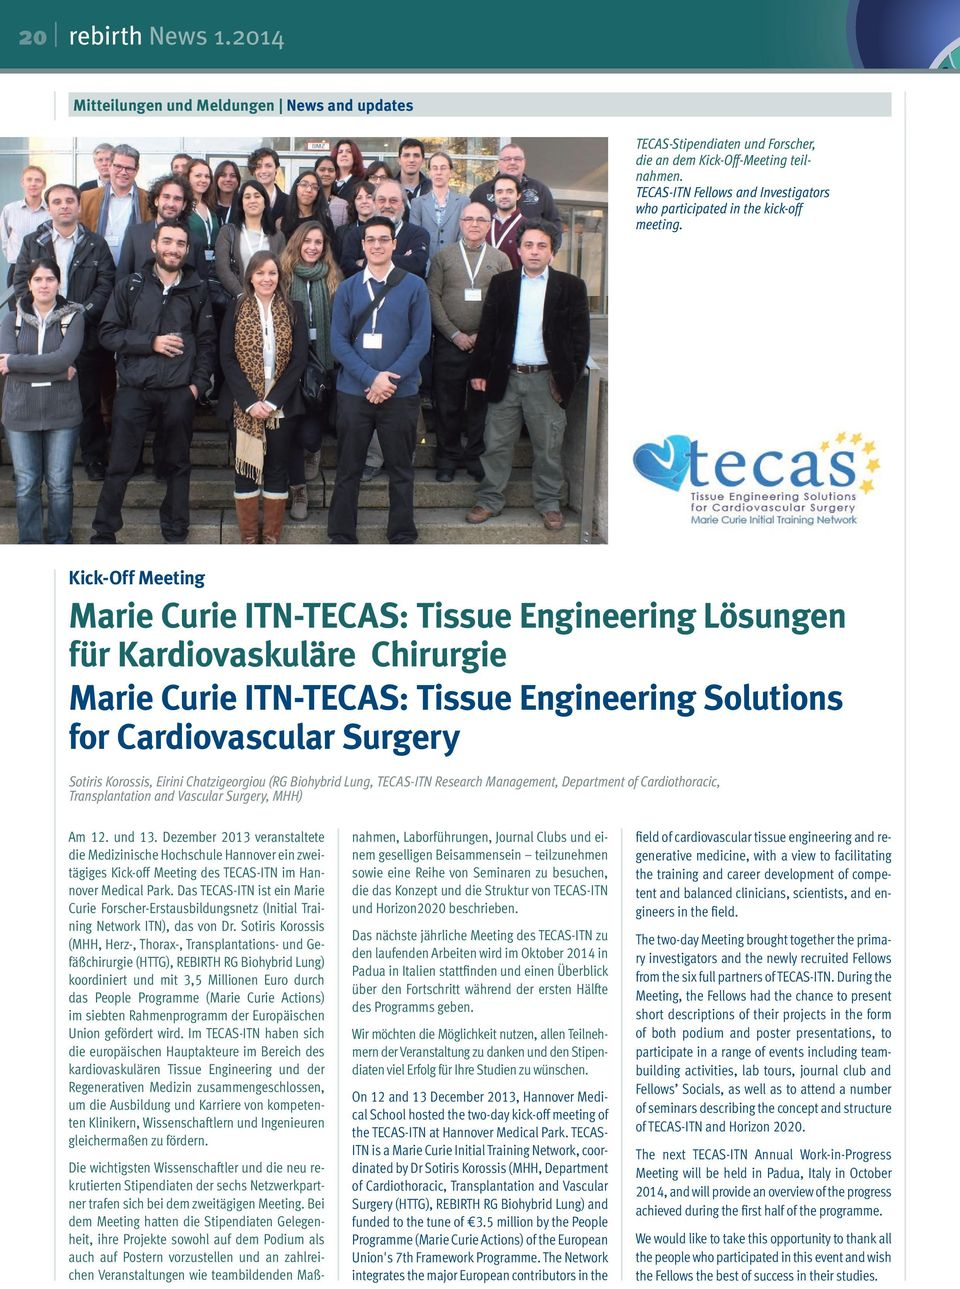 Kick-Off Meeting Marie Curie ITN-TECAS: Tissue Engineering Lösungen für Kardiovaskuläre Chirurgie Marie Curie ITN-TECAS: Tissue Engineering Solutions for Cardiovascular Surgery Sotiris Korossis,